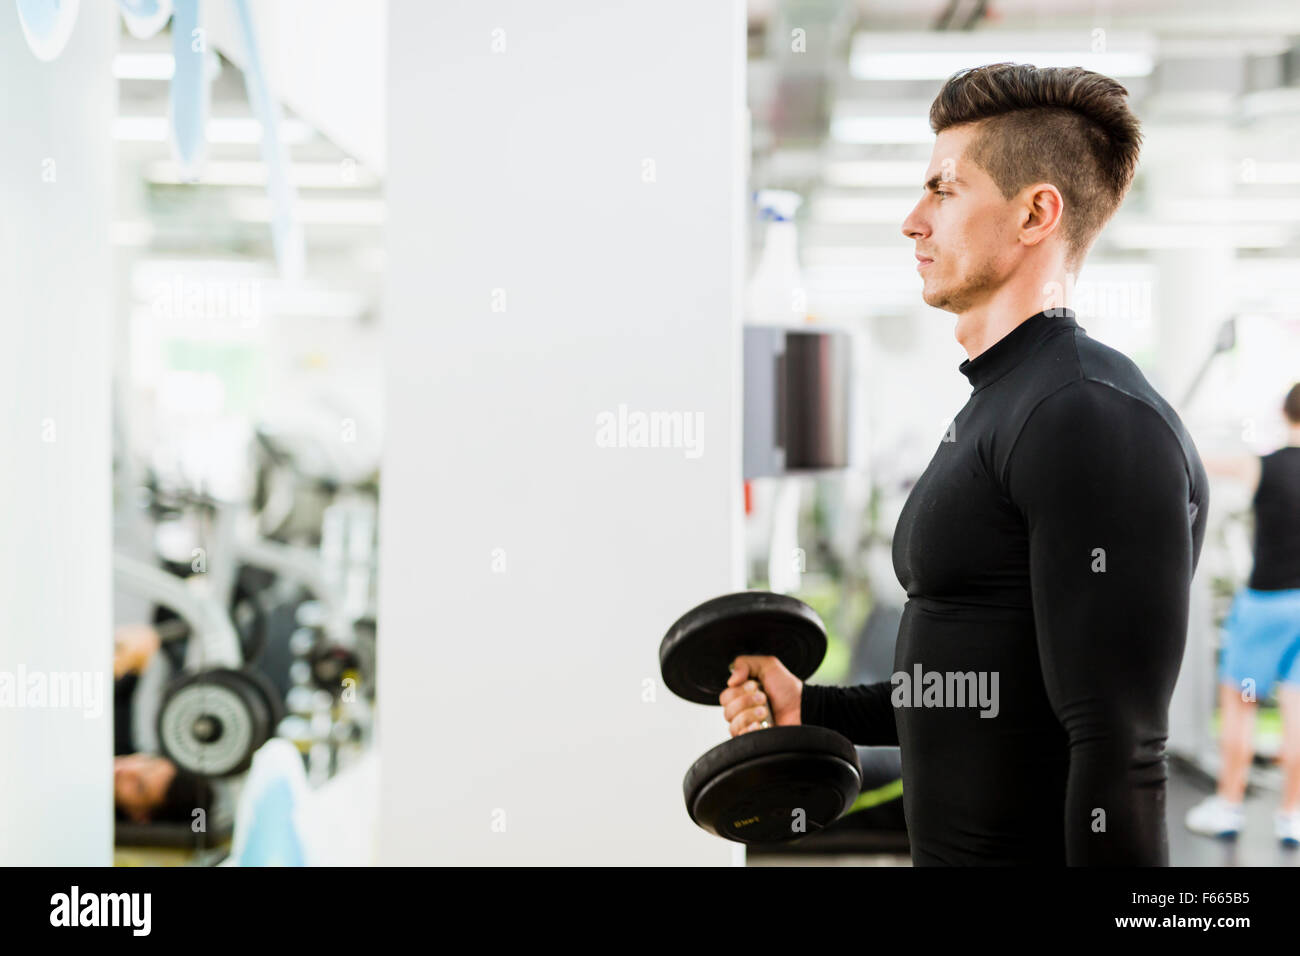 Young handsome man working out in a gym and lifting weights - Stock Image